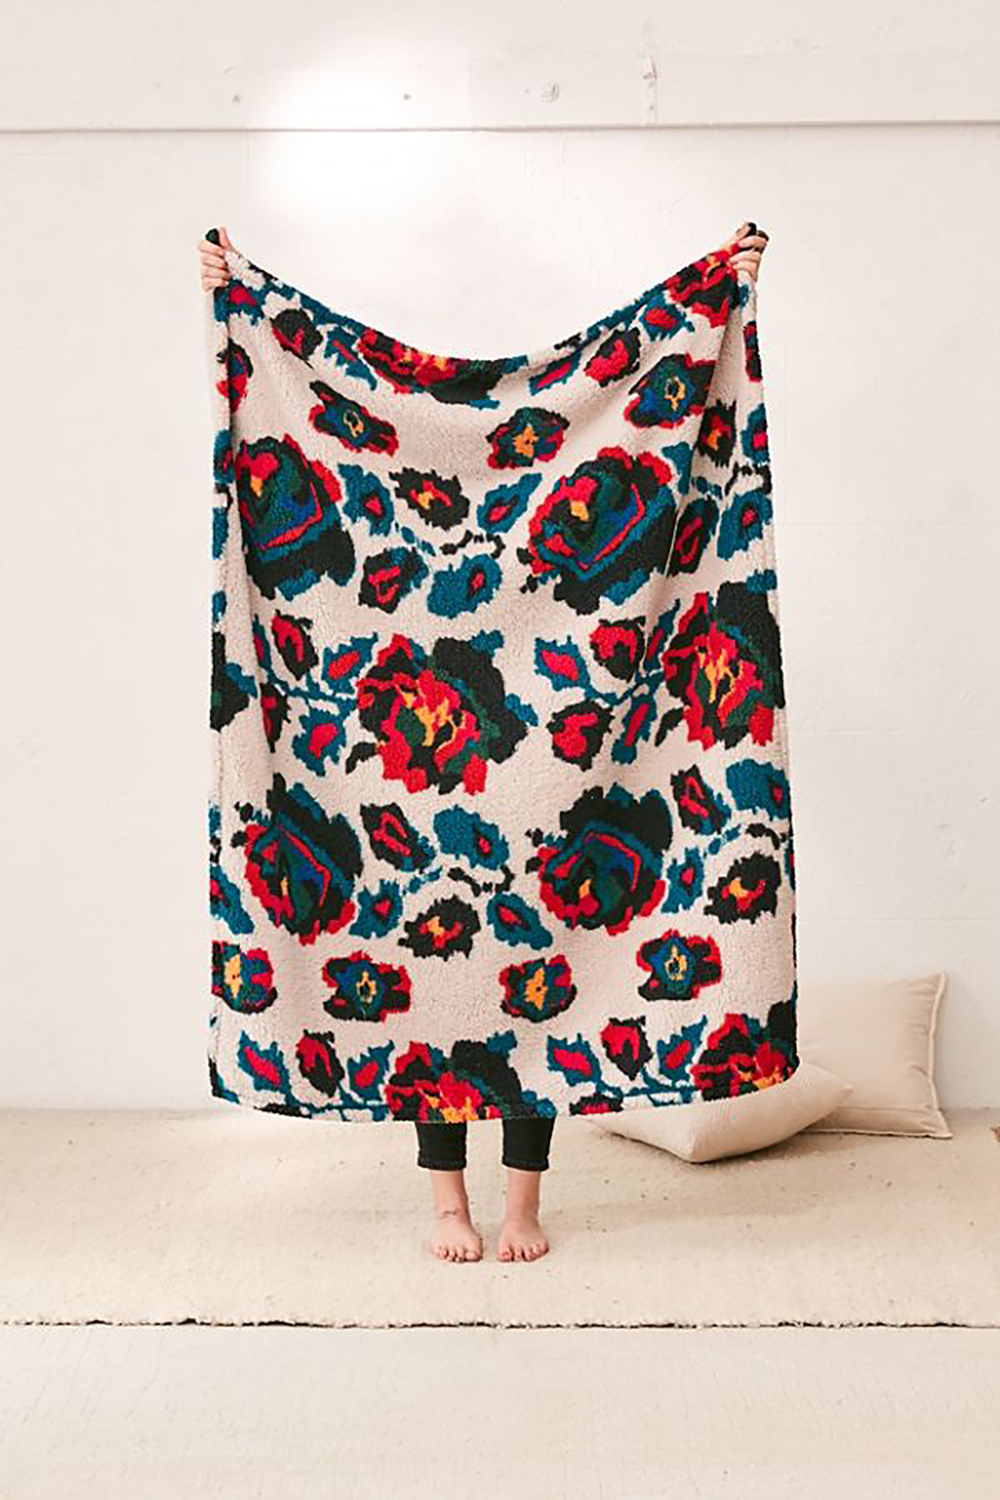 Amped Fleece Printed Throw Blanket: Urban Outfitters Home Sale